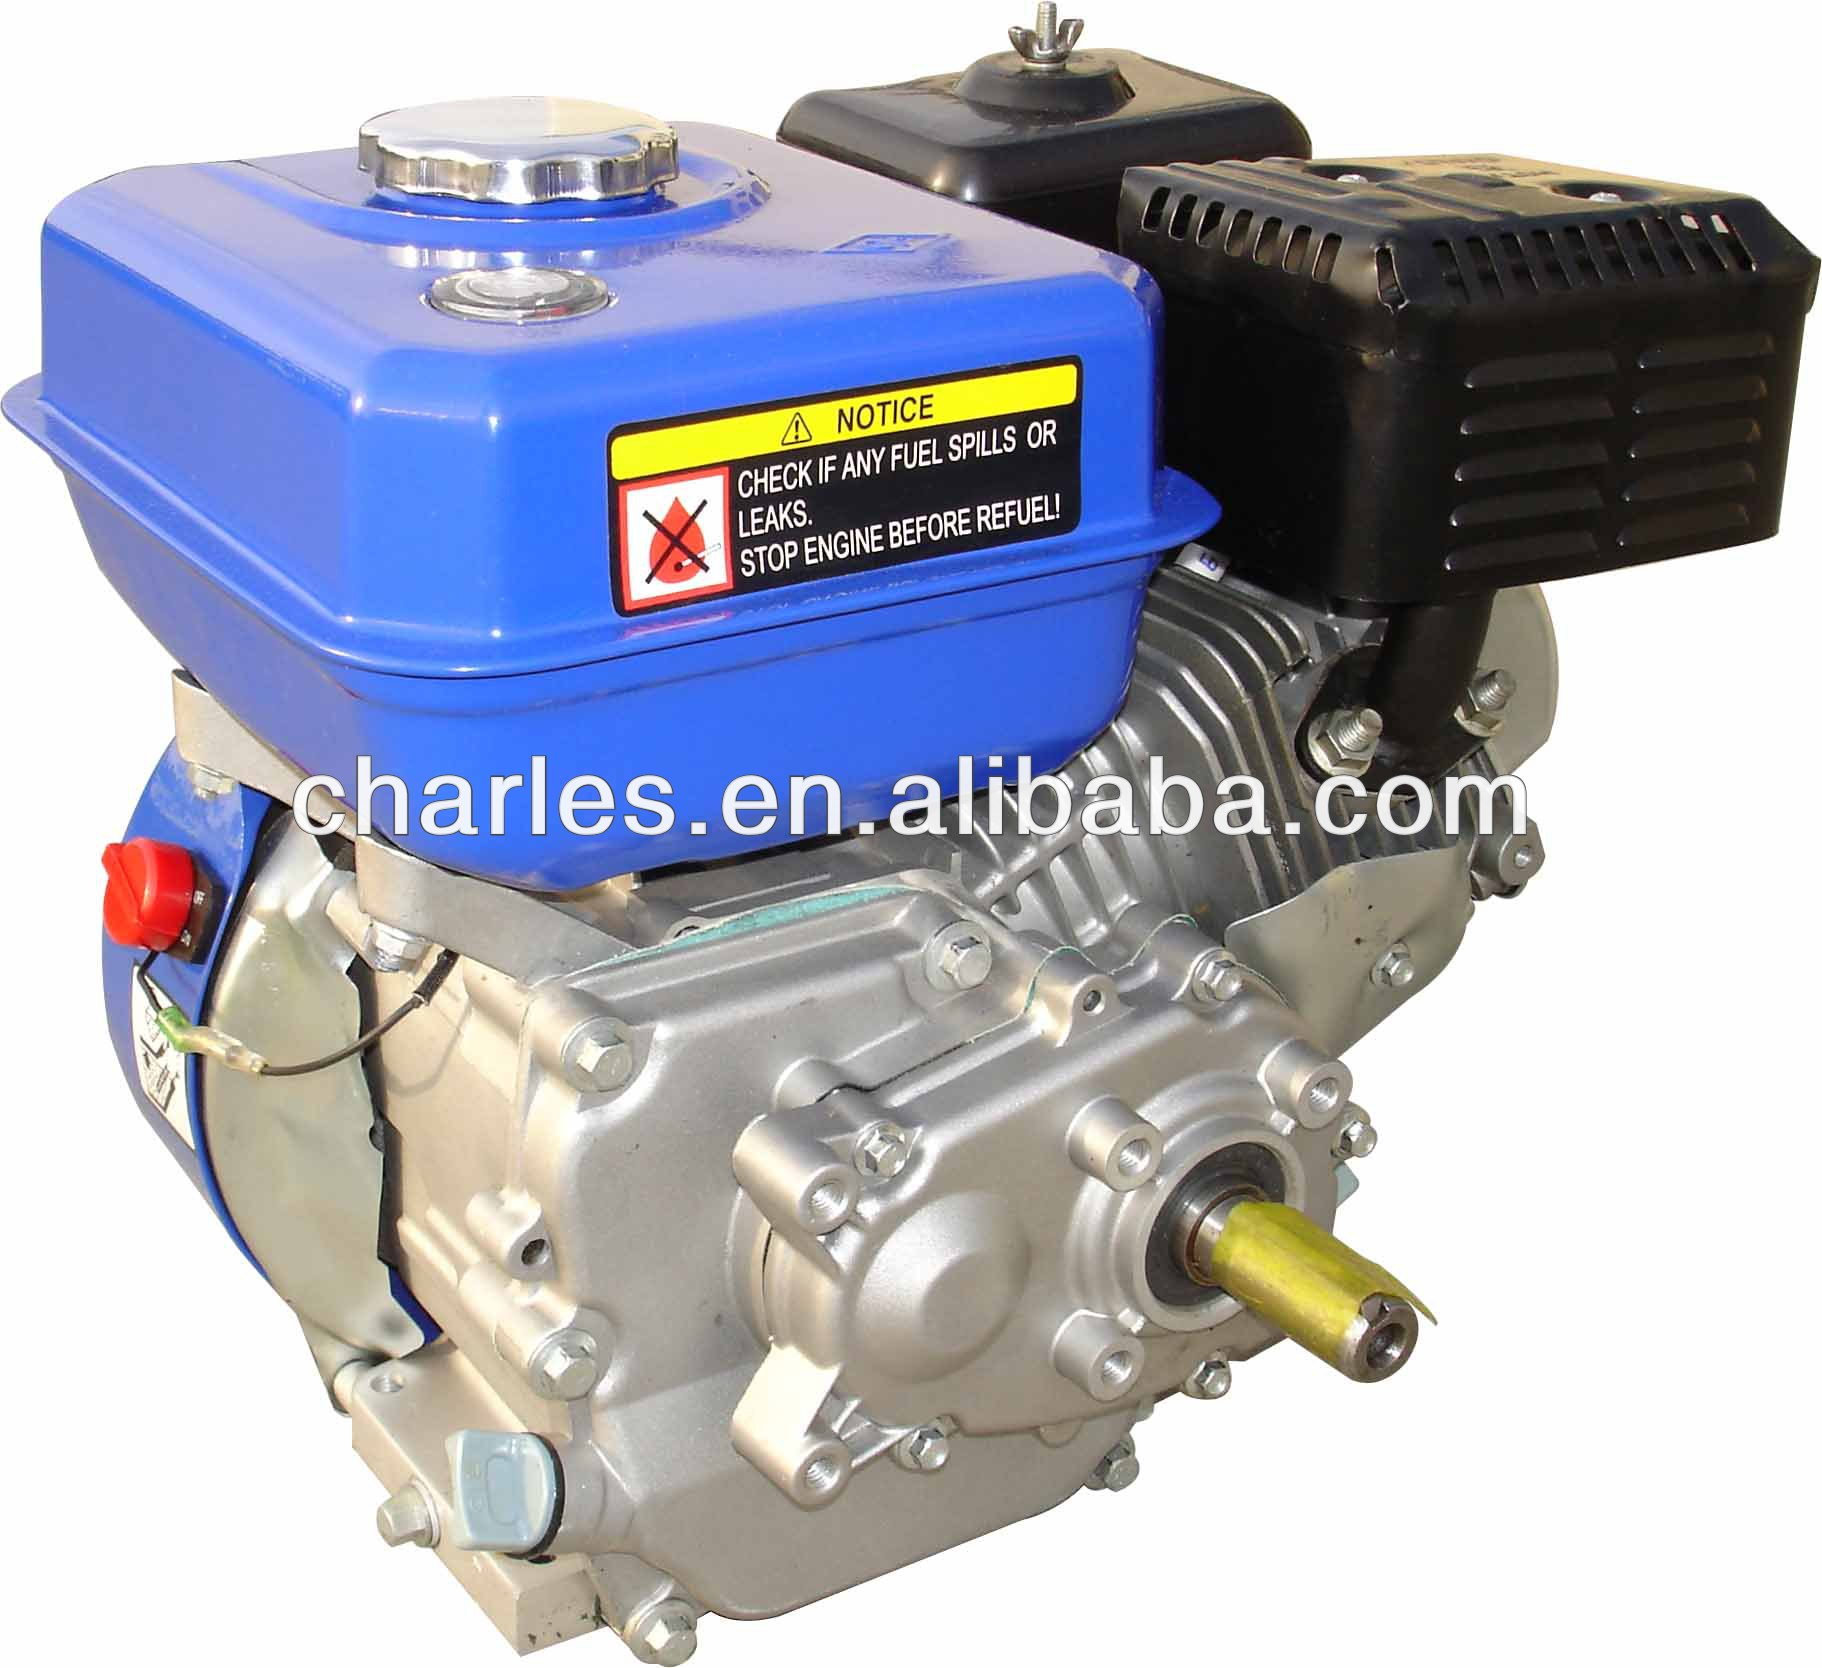 JD gasoline engine with 1/2 reduction driven with double chain